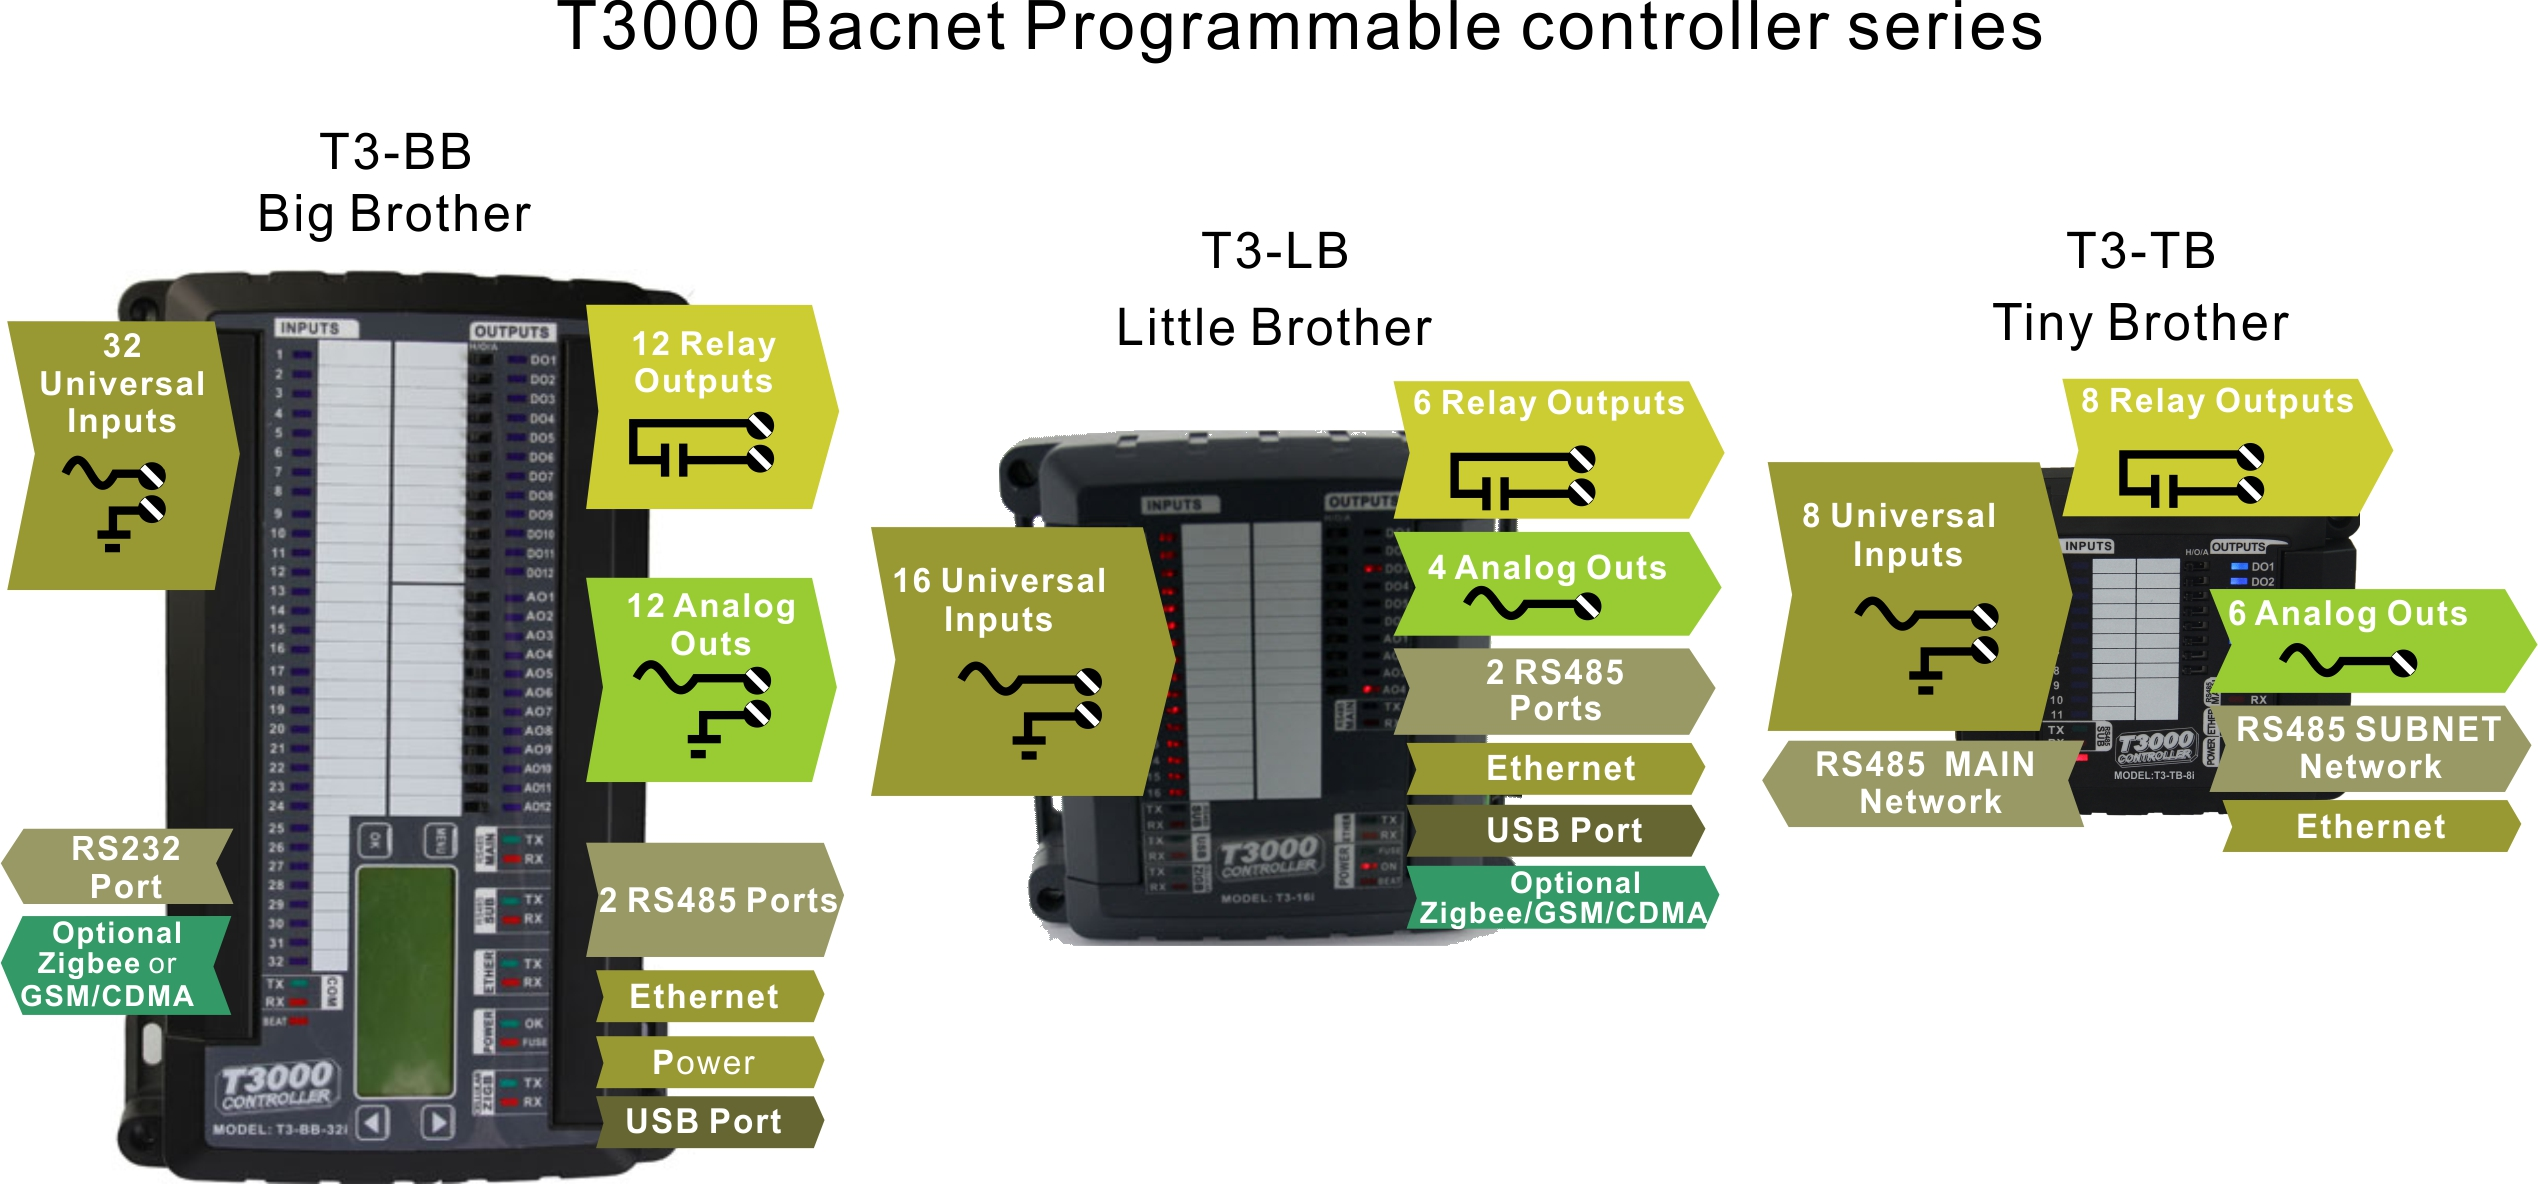 Bacnet Wiring Guide Auto Electrical Diagram Ms Tp Network Mstp